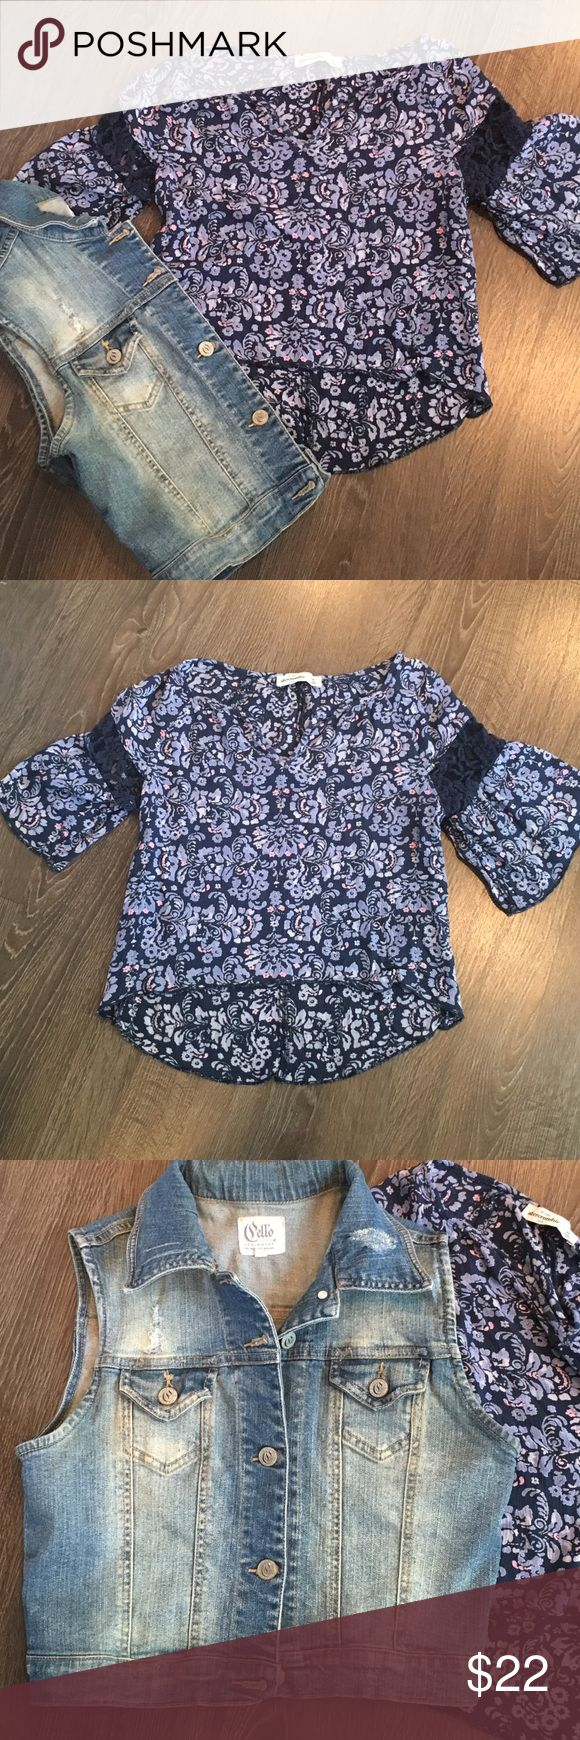 Abercrombie girls top and Cello Denim vest Abercrombie lightweight peasant blouse with bell sleeves and lace detail (gently used), Cello Denim distressed vest (EUC). Both girls size medium. Will sell separately if requested. 🌸automatically save when you bundle or make an offer🌸 abercrombie kids Matching Sets